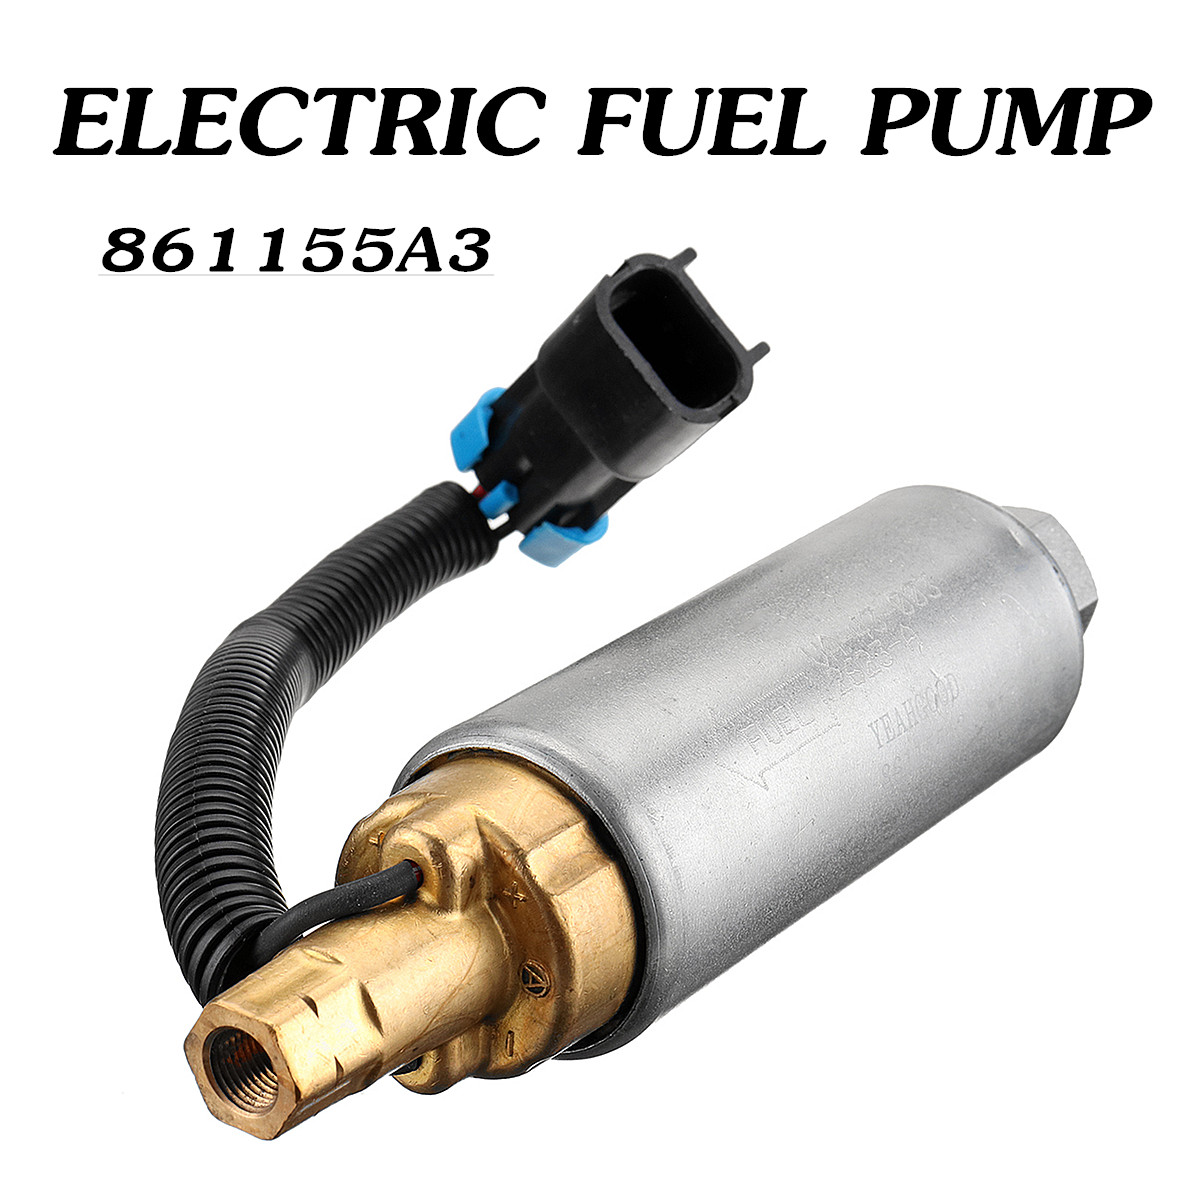 861155A3 Boat Electric Fuel Pump for Mercury Mercruiser 4.3 5.0 5.7 V6 V8 Carb Threaded Operation Pressure is 9psi-10 psi 16x4cm861155A3 Boat Electric Fuel Pump for Mercury Mercruiser 4.3 5.0 5.7 V6 V8 Carb Threaded Operation Pressure is 9psi-10 psi 16x4cm